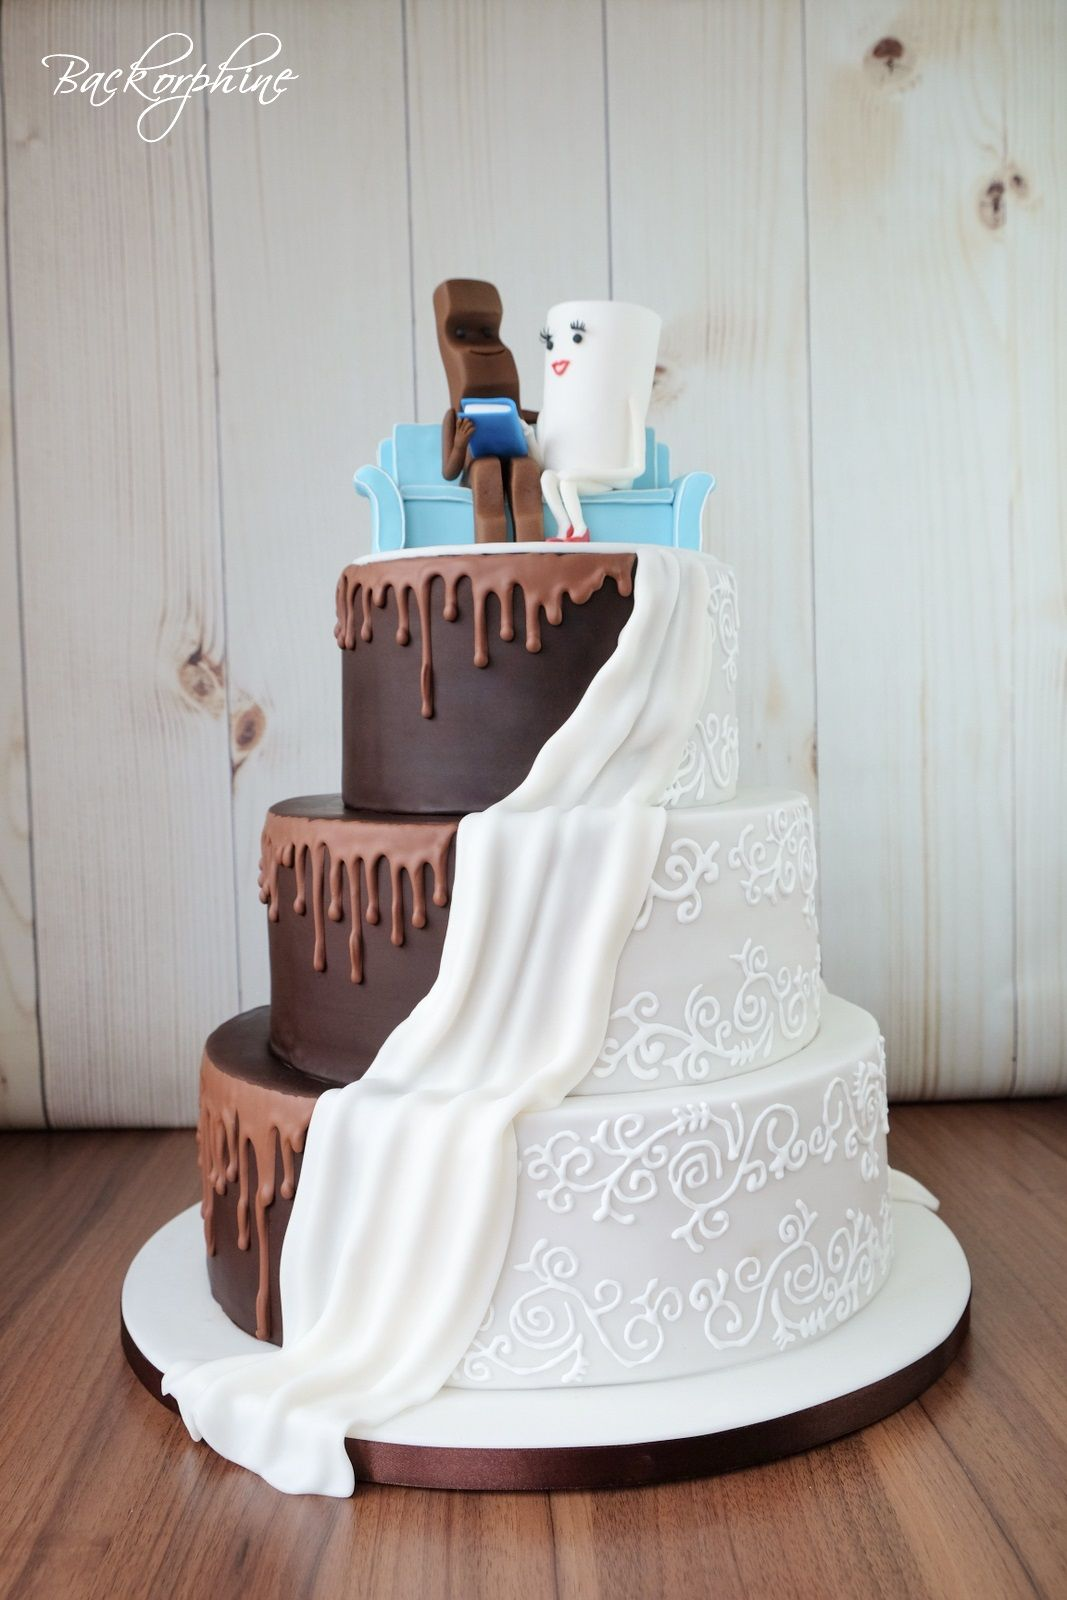 kinderschokolade hochzeitstorte kinder chocolate wedding cake hochzeit in 2019 wedding. Black Bedroom Furniture Sets. Home Design Ideas